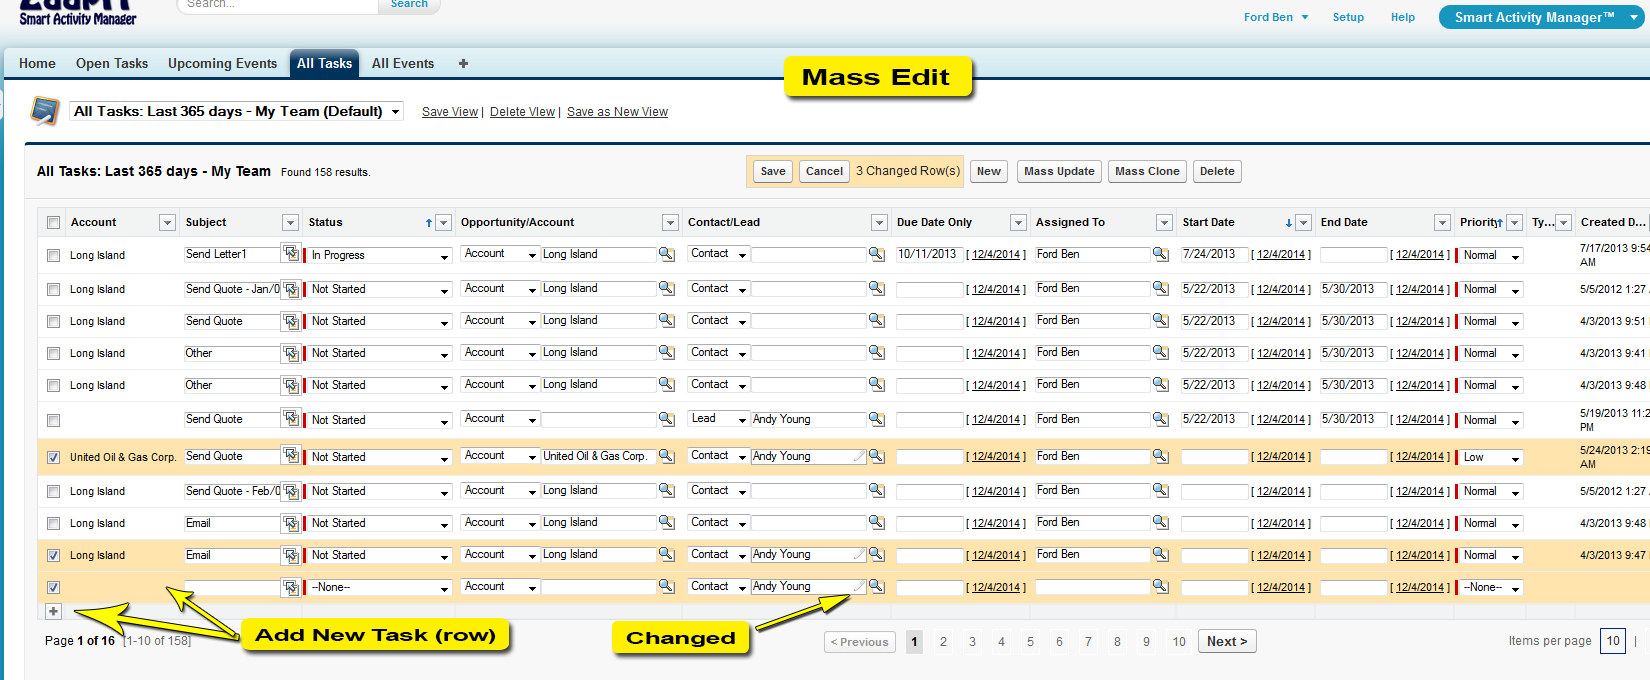 Smart Activity Manager Image #2